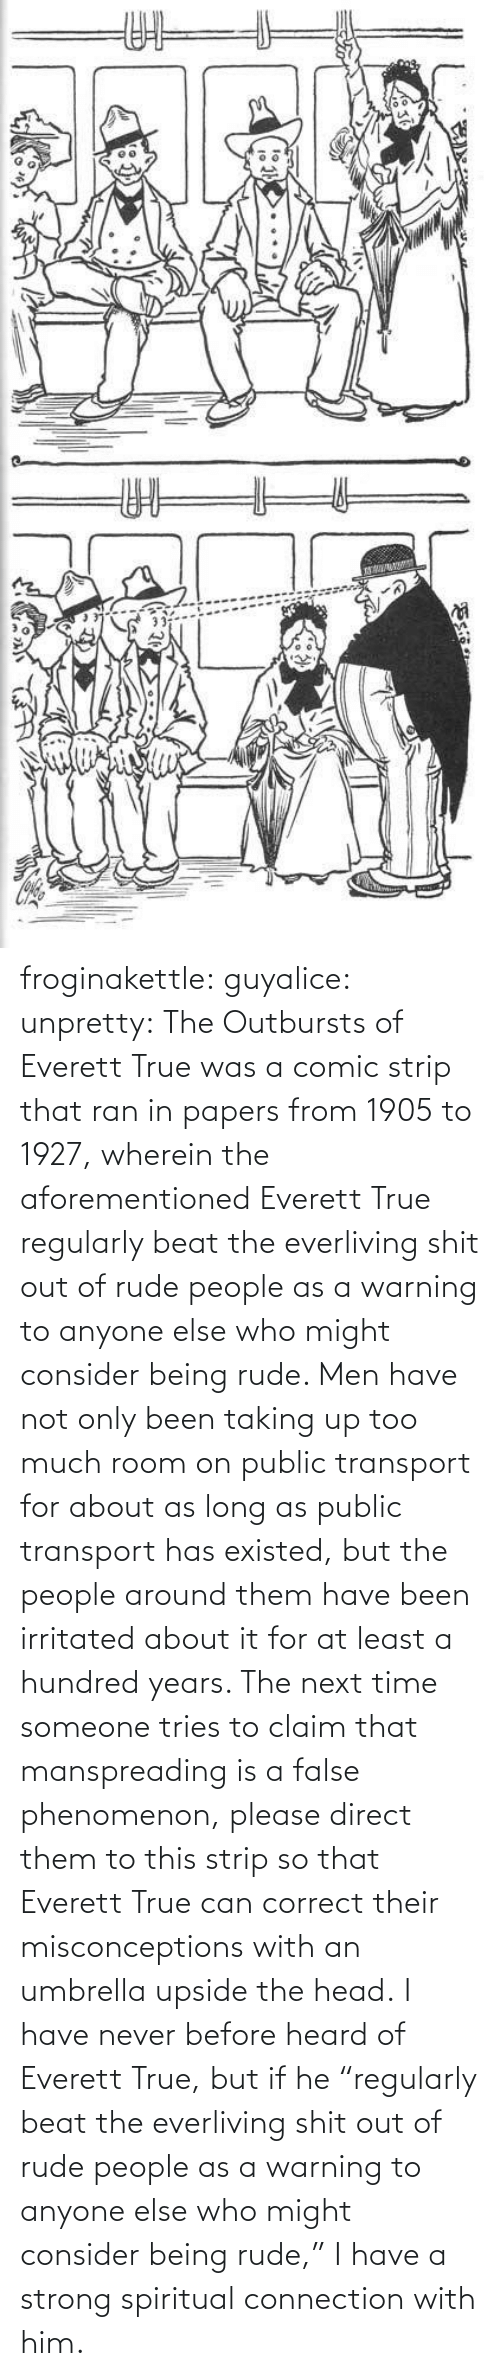 "strip: ఇ  క froginakettle:  guyalice:  unpretty:  The Outbursts of Everett True was a comic strip that ran in papers from 1905 to 1927, wherein the aforementioned Everett True regularly beat the everliving shit out of rude people as a warning to anyone else who might consider being rude. Men have not only been taking up too much room on public transport for about as long as public transport has existed, but the people around them have been irritated about it for at least a hundred years. The next time someone tries to claim that manspreading is a false phenomenon, please direct them to this strip so that Everett True can correct their misconceptions with an umbrella upside the head.  I have never before heard of Everett True, but if he ""regularly beat the everliving shit out of rude people as a warning to anyone else who might consider being rude,"" I have a strong spiritual connection with him."